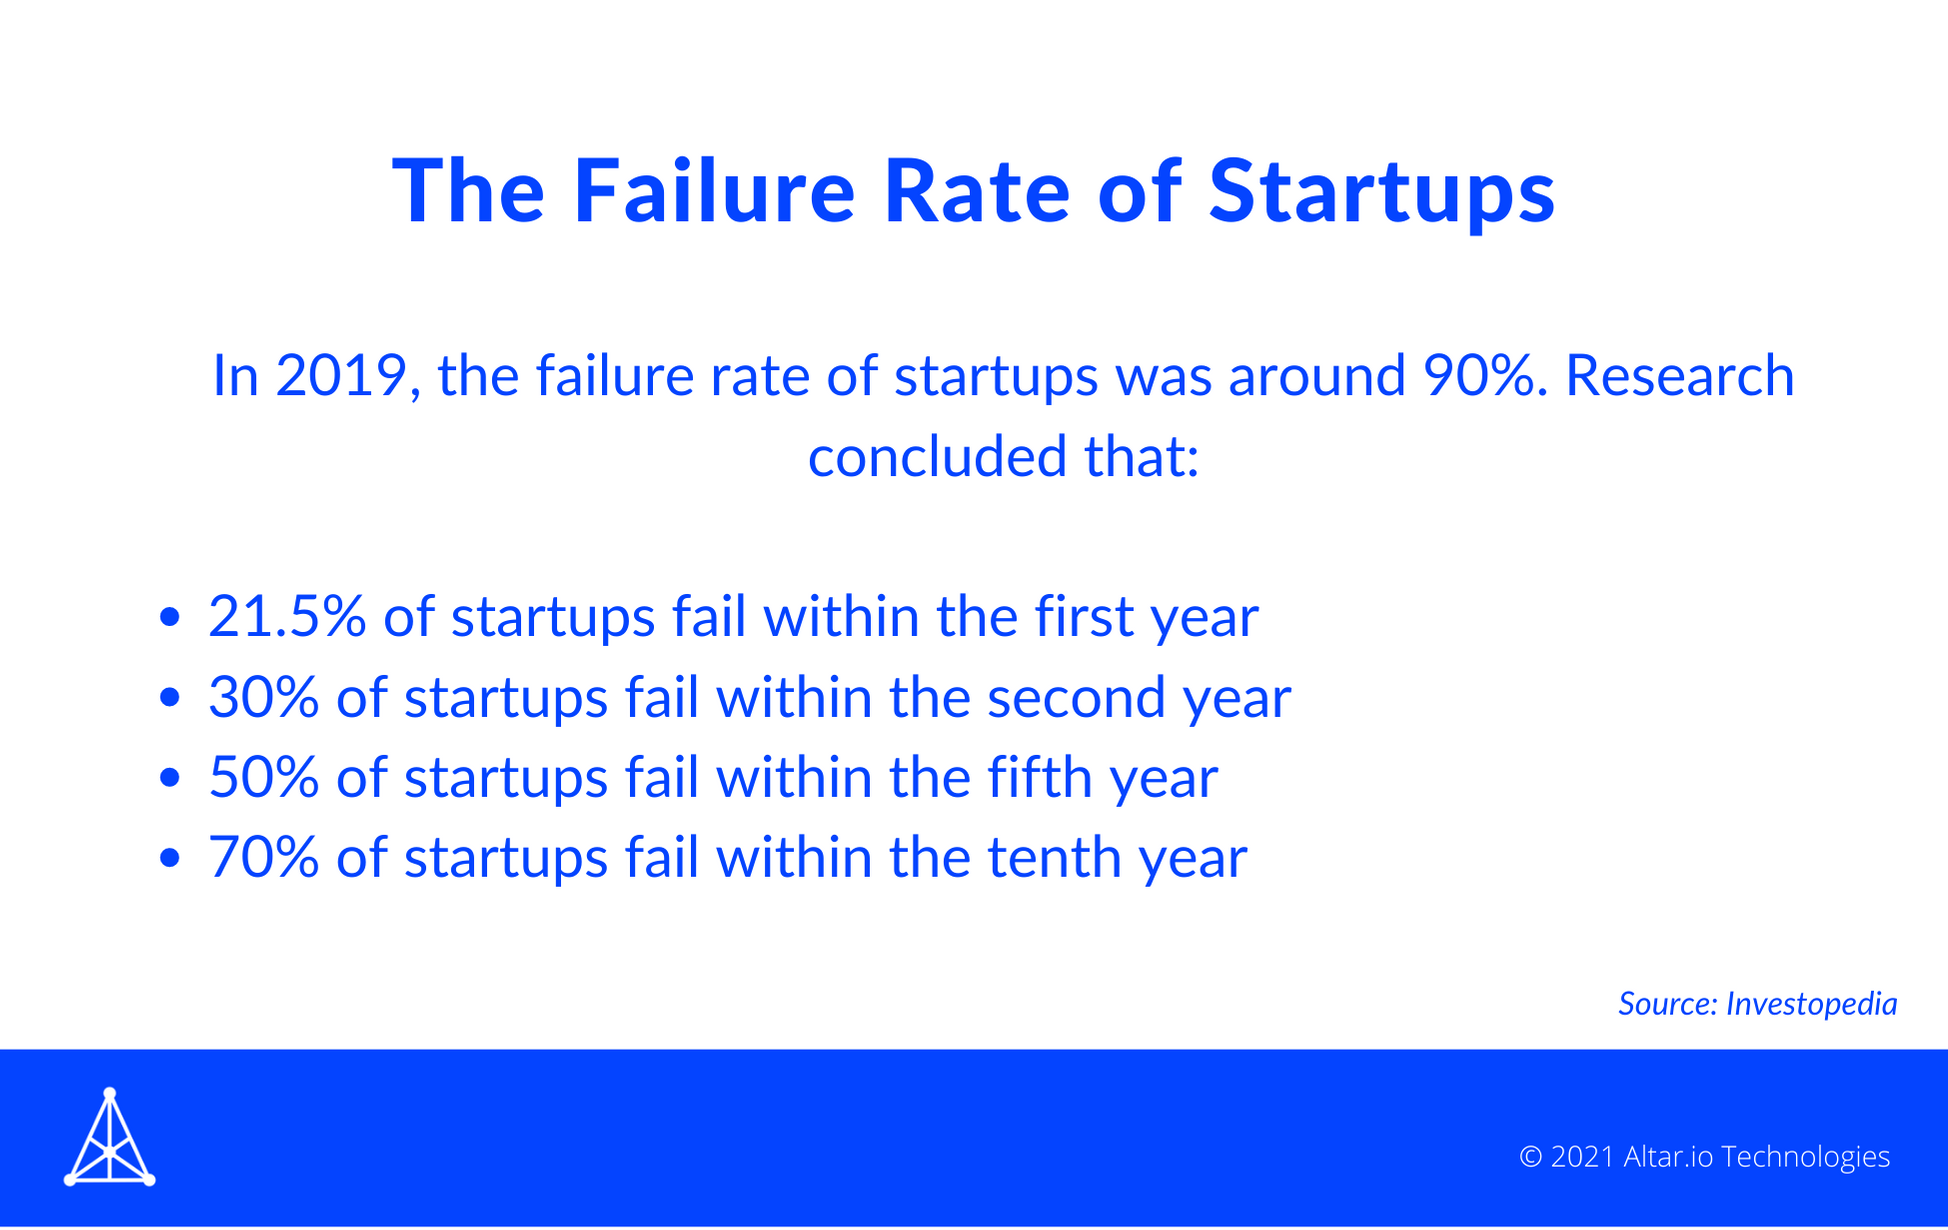 The Failure Rate of Startups 2019